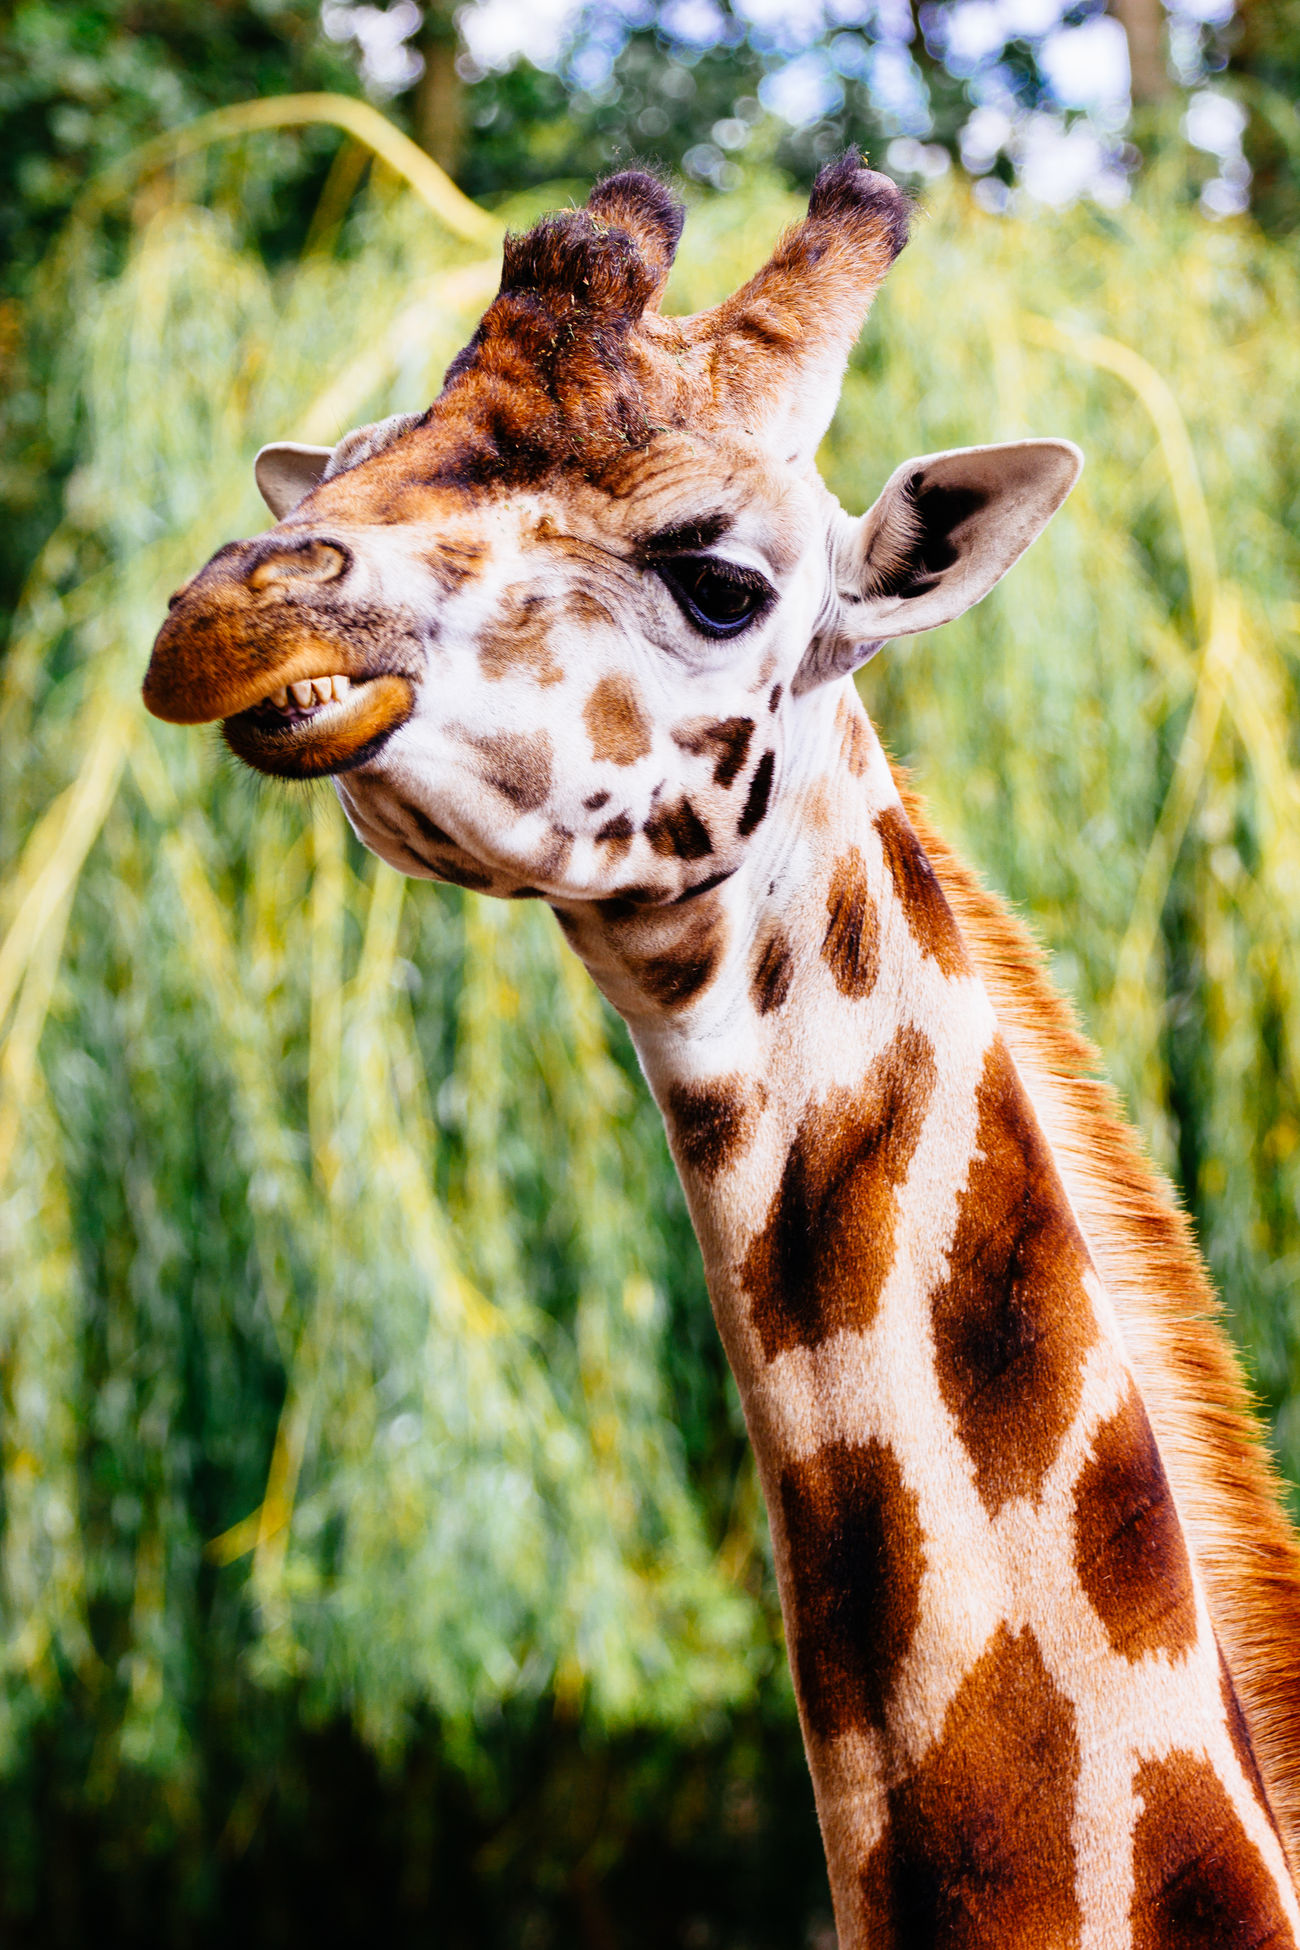 A funny photograph of a giraffe showing its teeth, it looks like the animal is smiling. Animal Animal Head  Funny Giraffe Herbivorous Mammal One Animal Portrait Wildlife